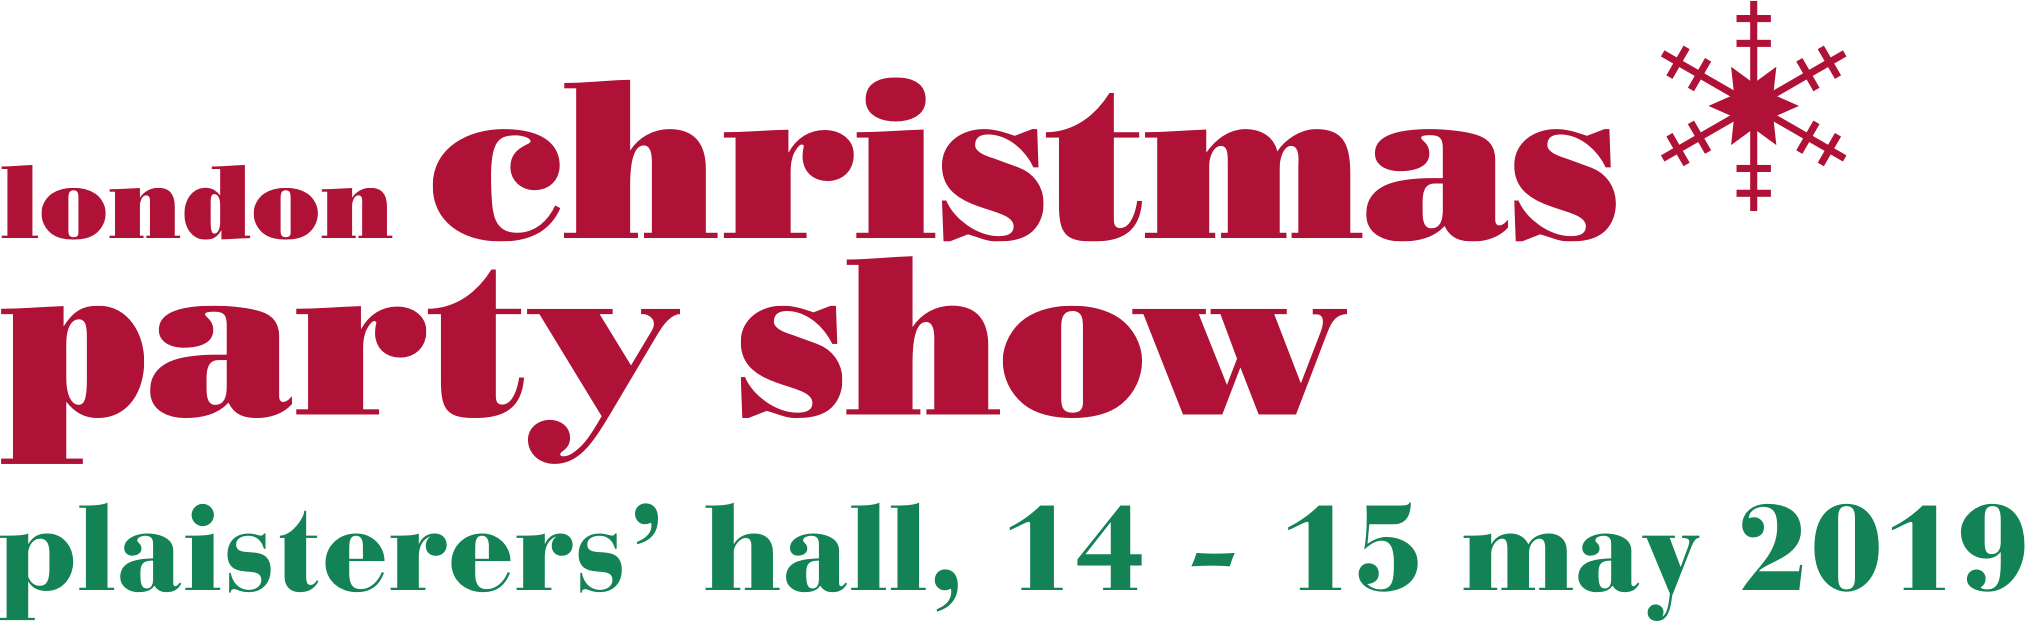 London Christmas Party Show 2019